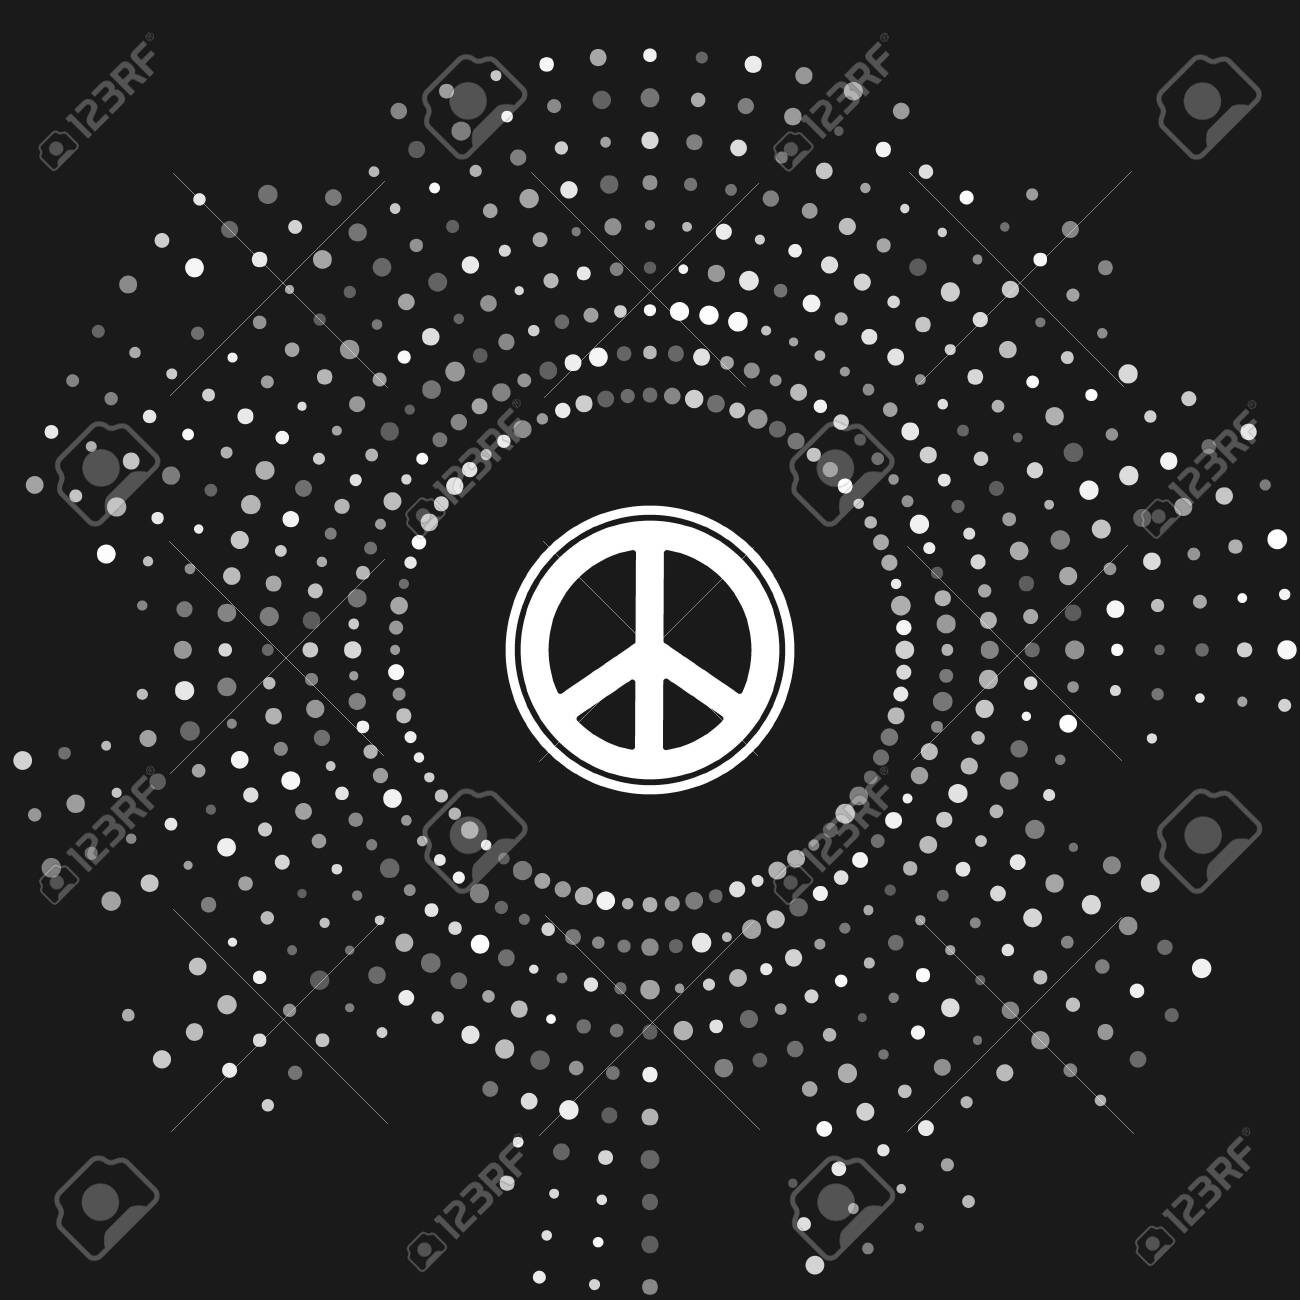 White Peace Icon Isolated On Grey Background Hippie Symbol Of Royalty Free Cliparts Vectors And Stock Illustration Image 136718472 Classy and luxury | black and white aesthetic, eiffel tower, travel. 123rf